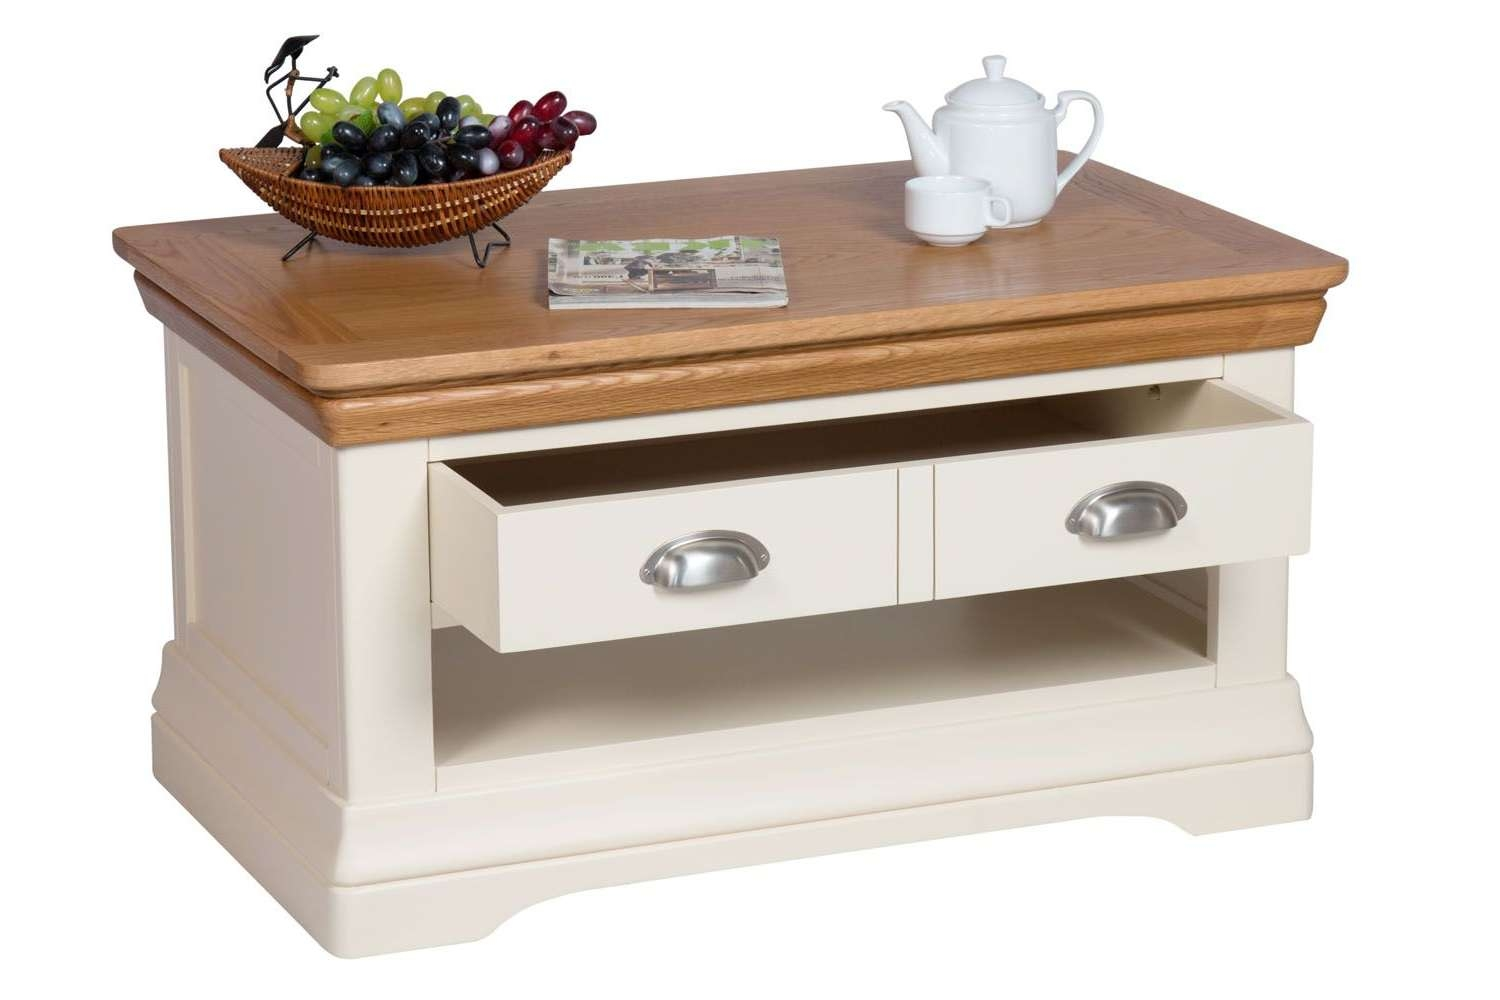 Preferred Cream Coffee Tables With Drawers Pertaining To Farmhouse Cream Painted Oak Coffee Table With Drawers (View 17 of 20)